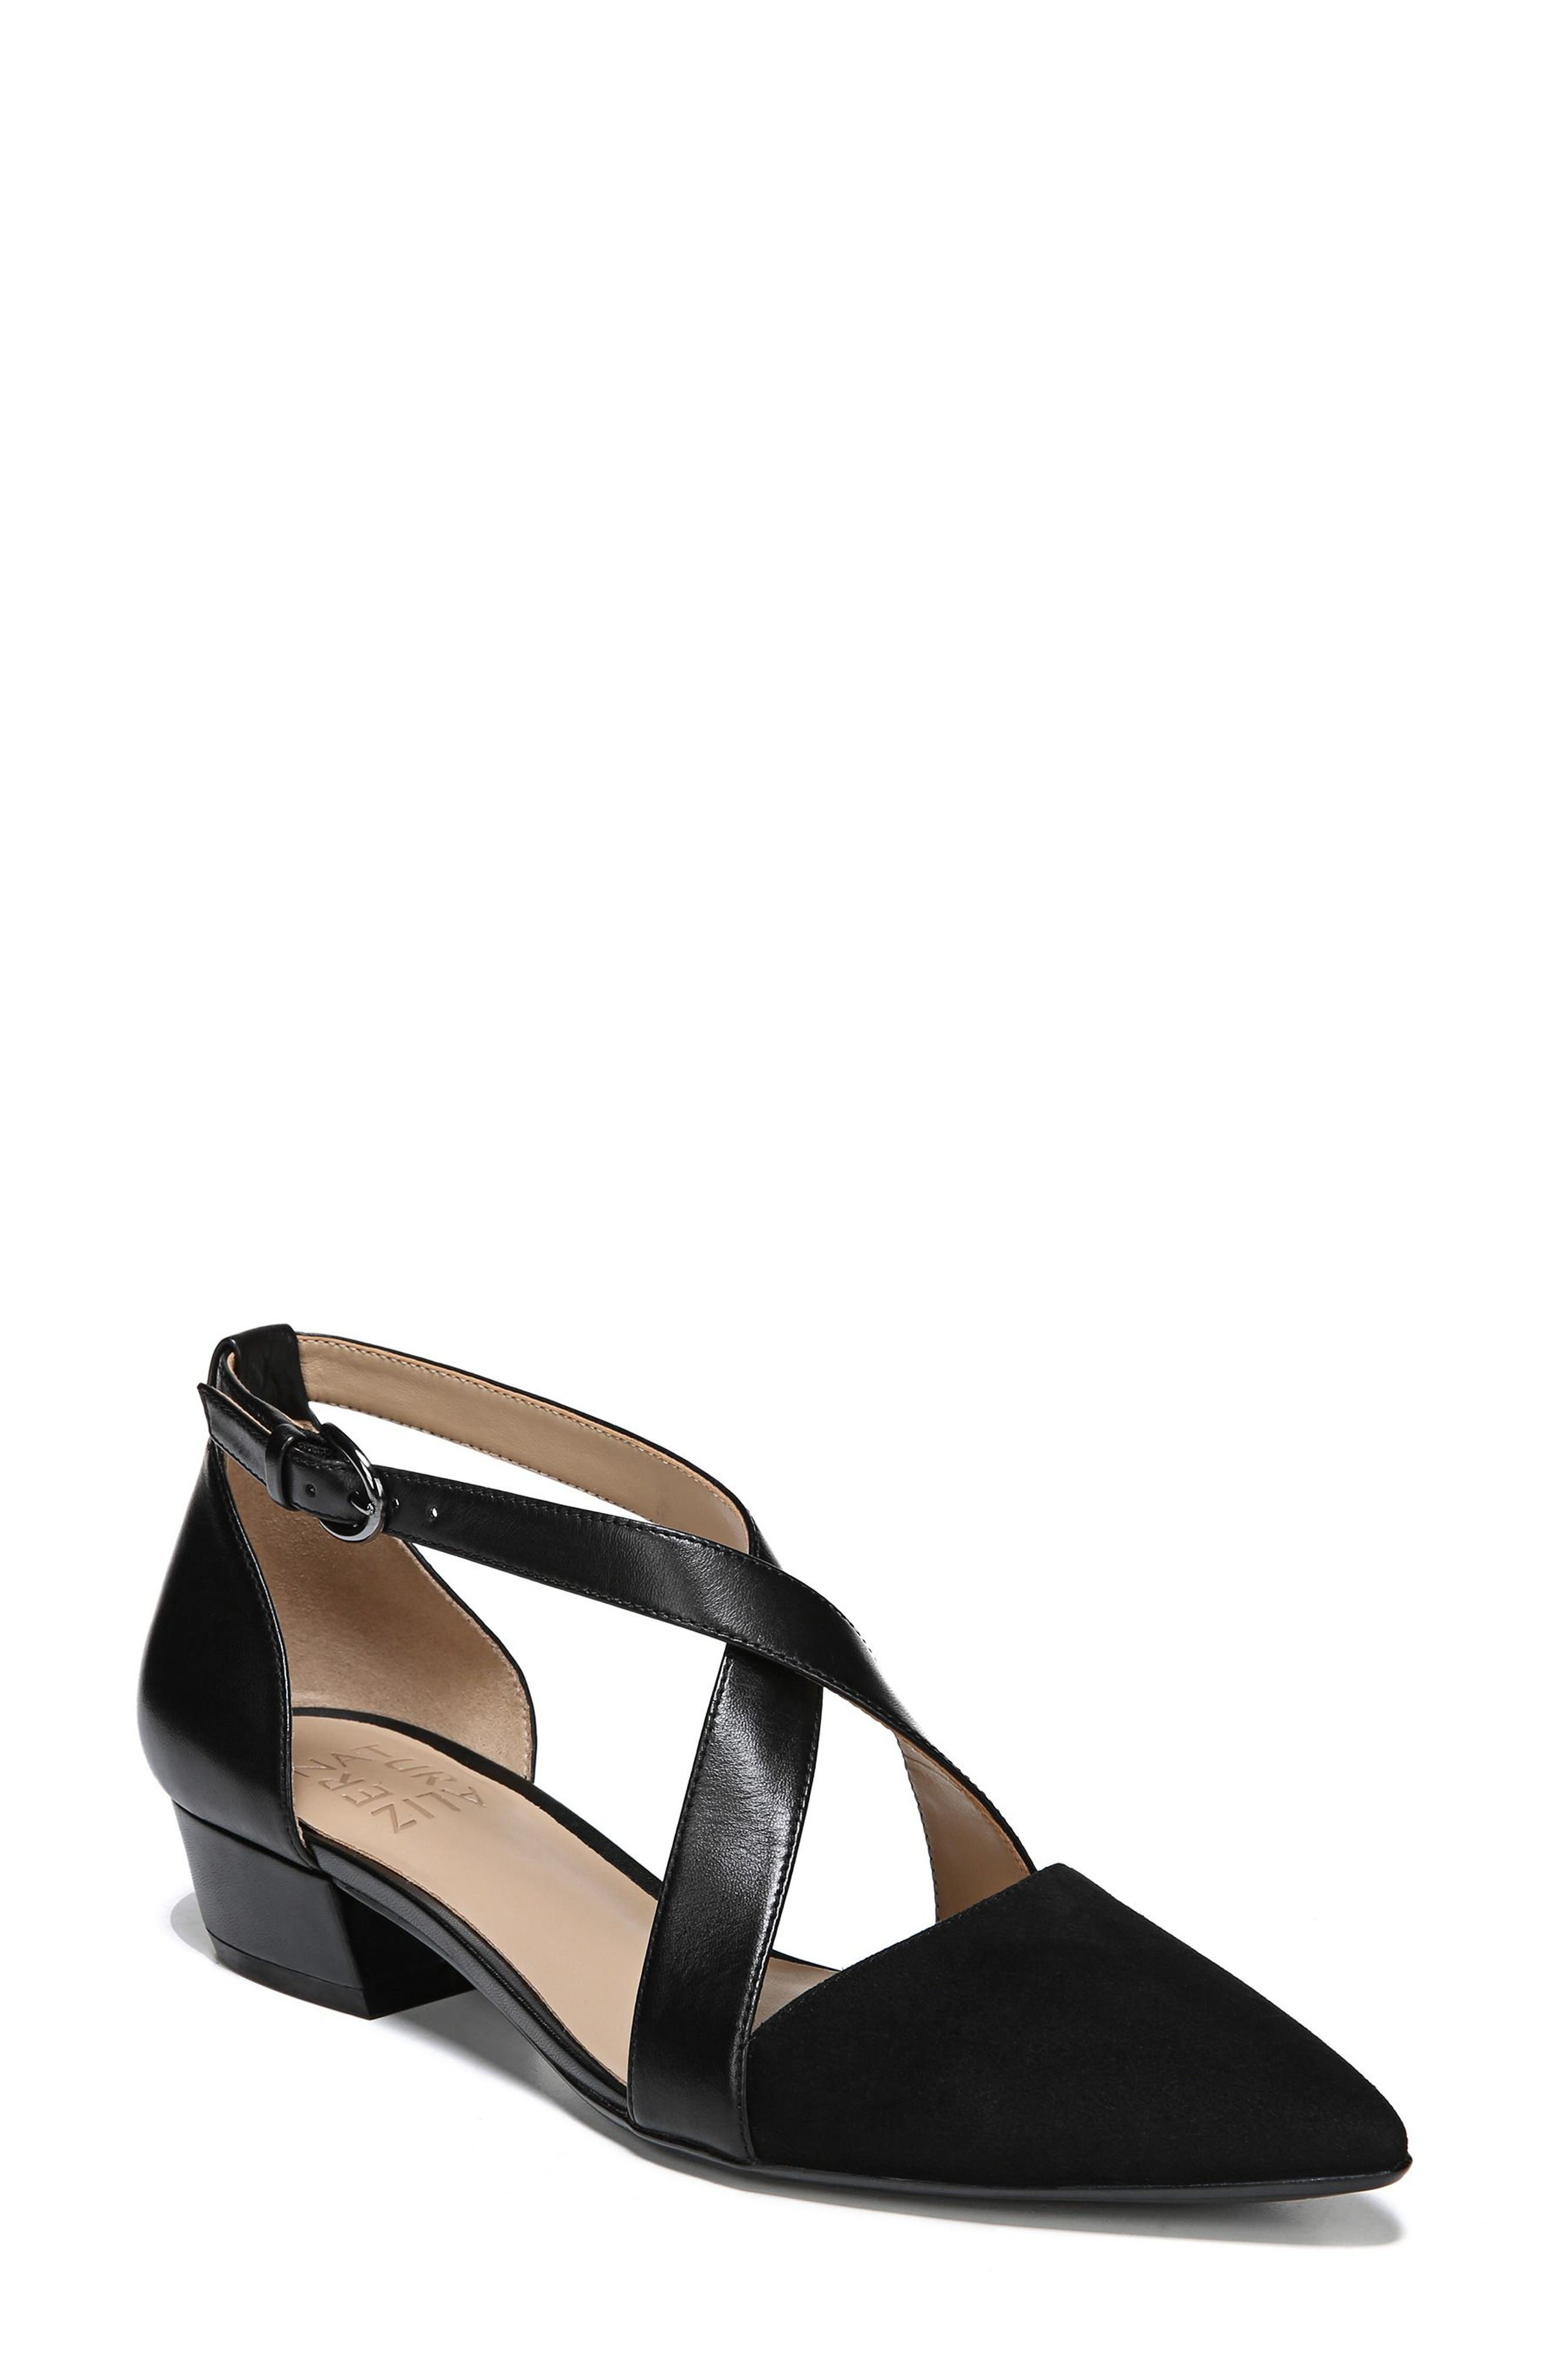 Naturalizer Blakely Pump